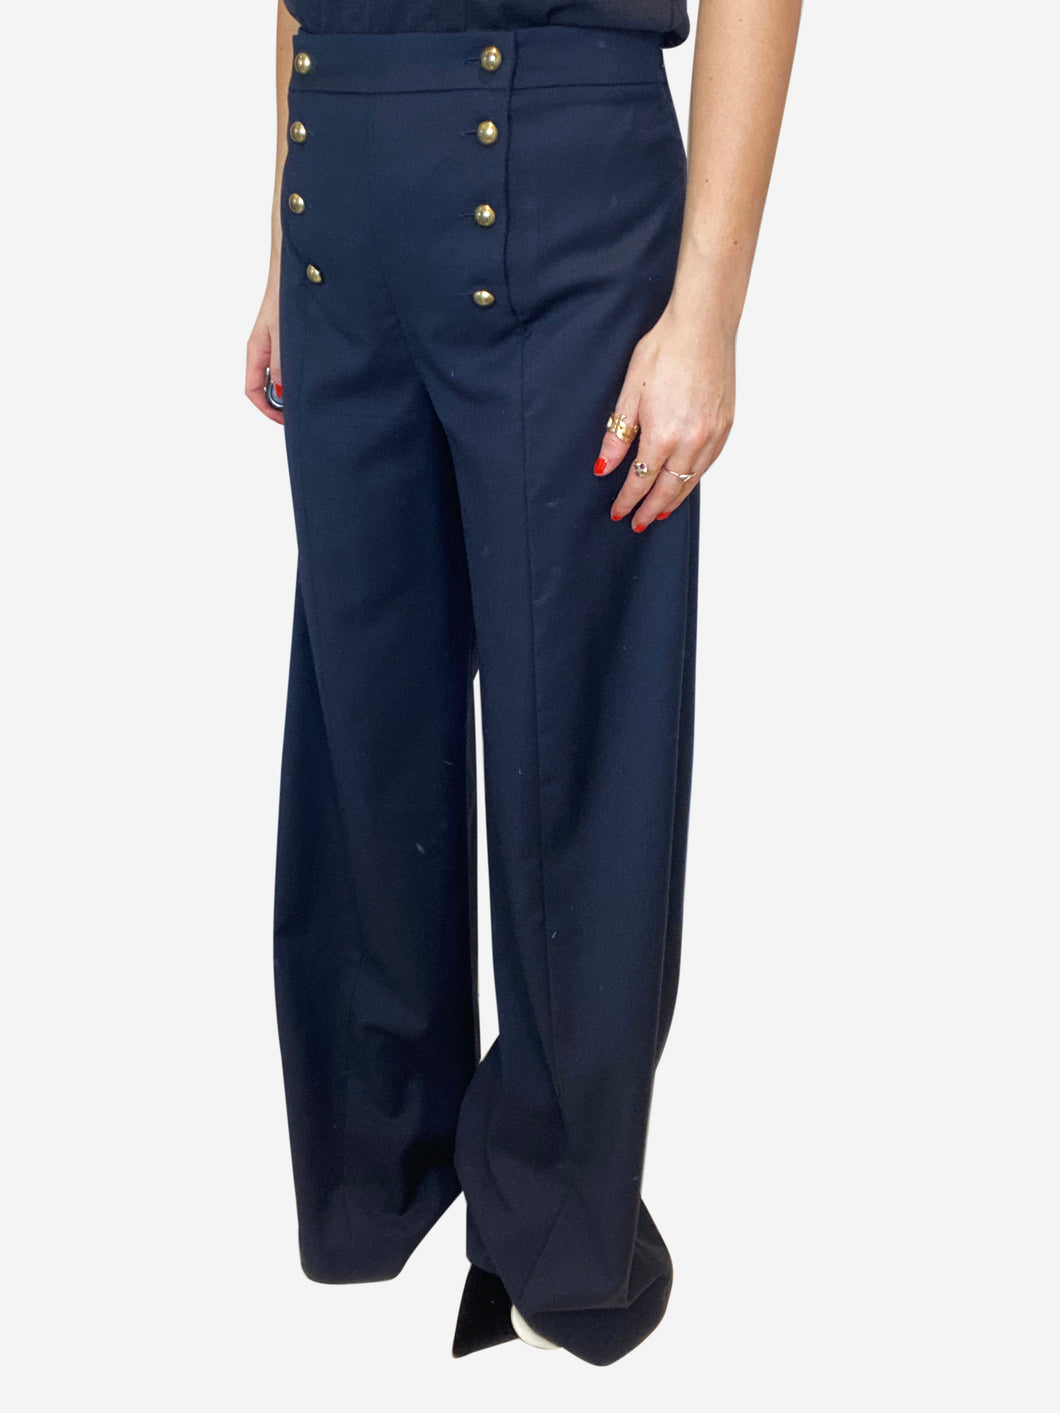 Navy & gold wide leg trousers - size UK 10